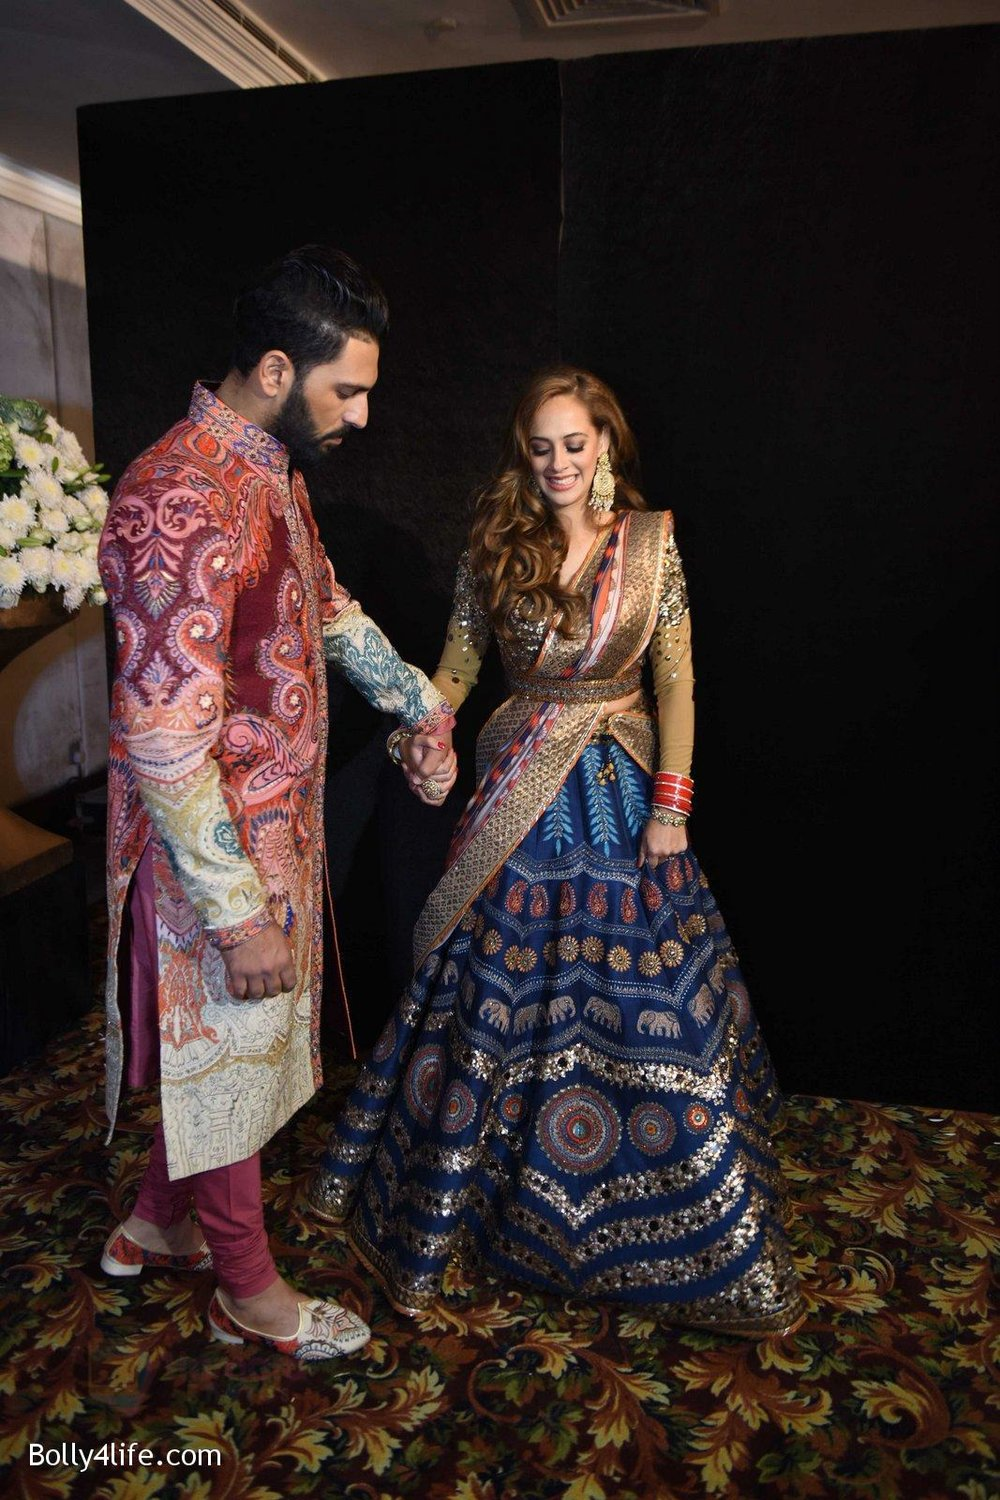 Yuvraj-Singh-and-Hazel-Keech-Wedding-Reception-on-7th-Dec-2016-2.jpg